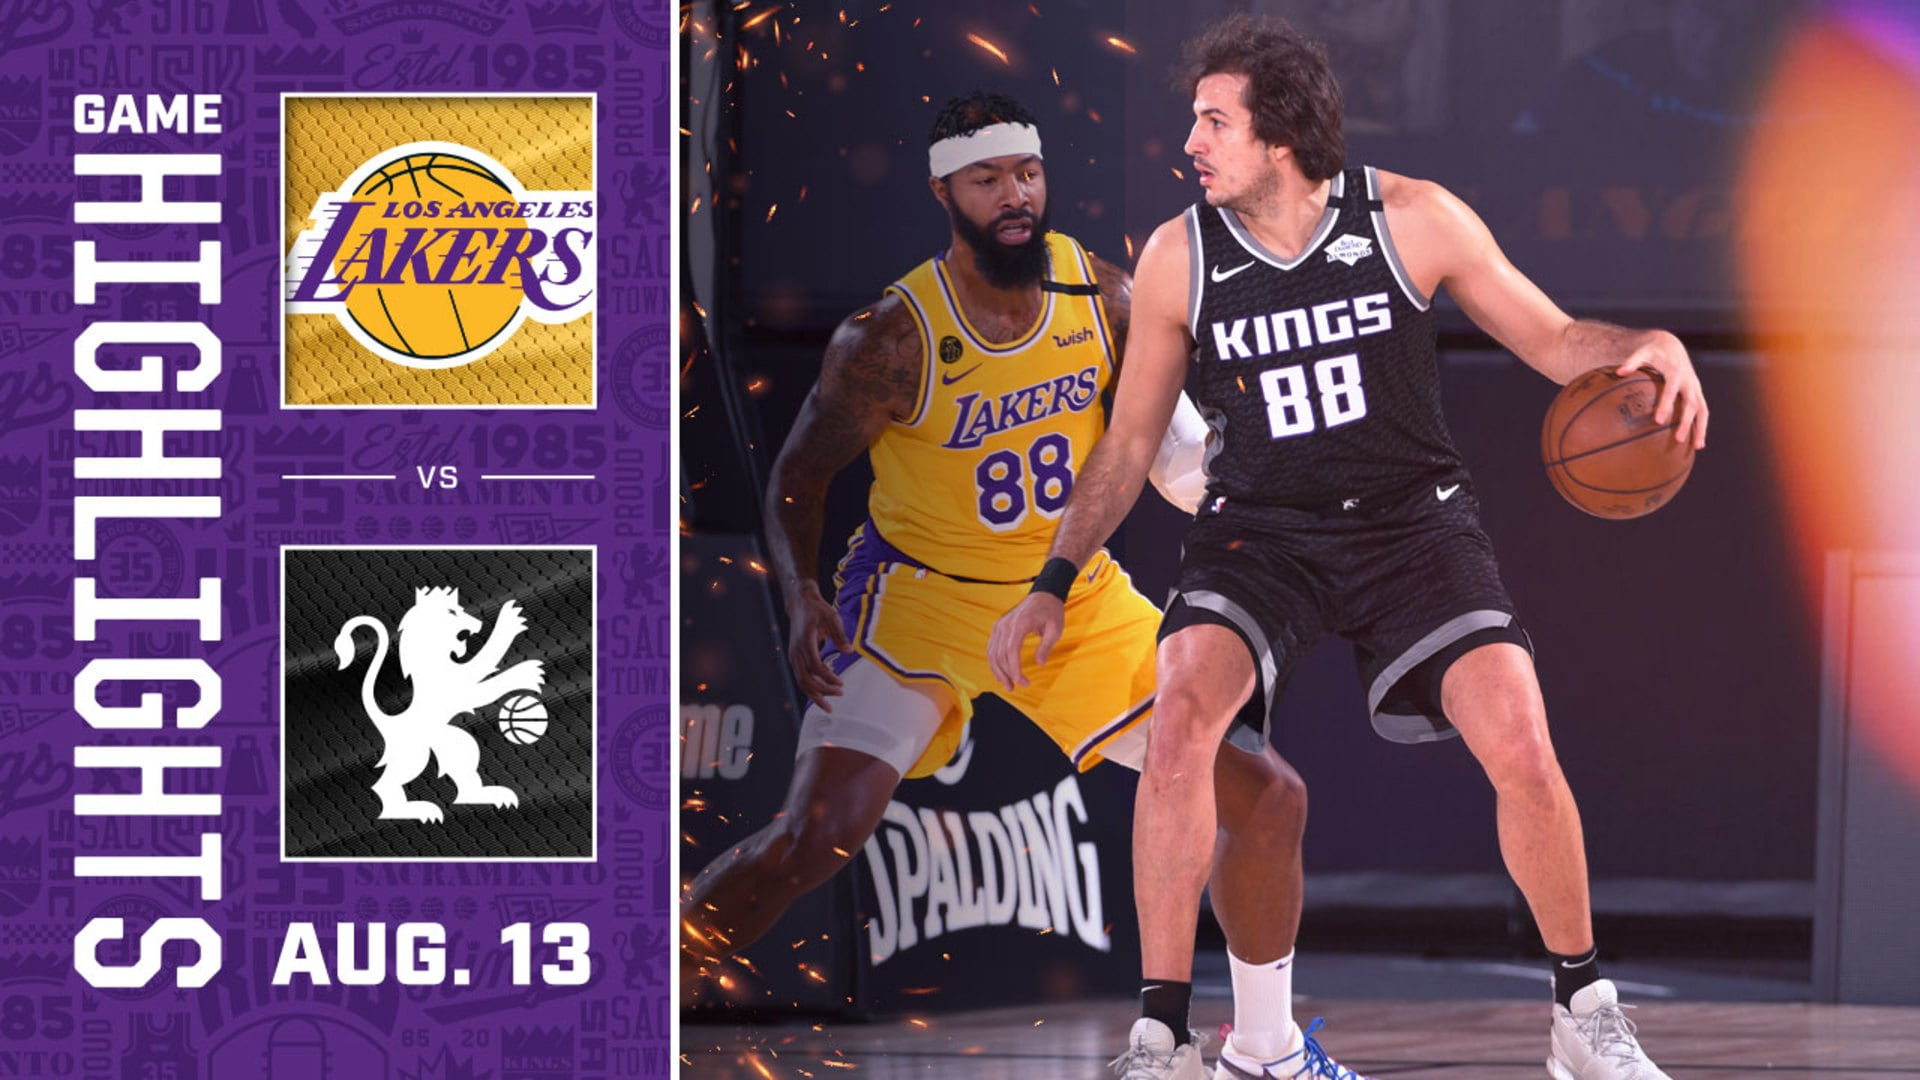 Kings Beat LA to End Season on a High Note | Kings vs Lakers Highlights